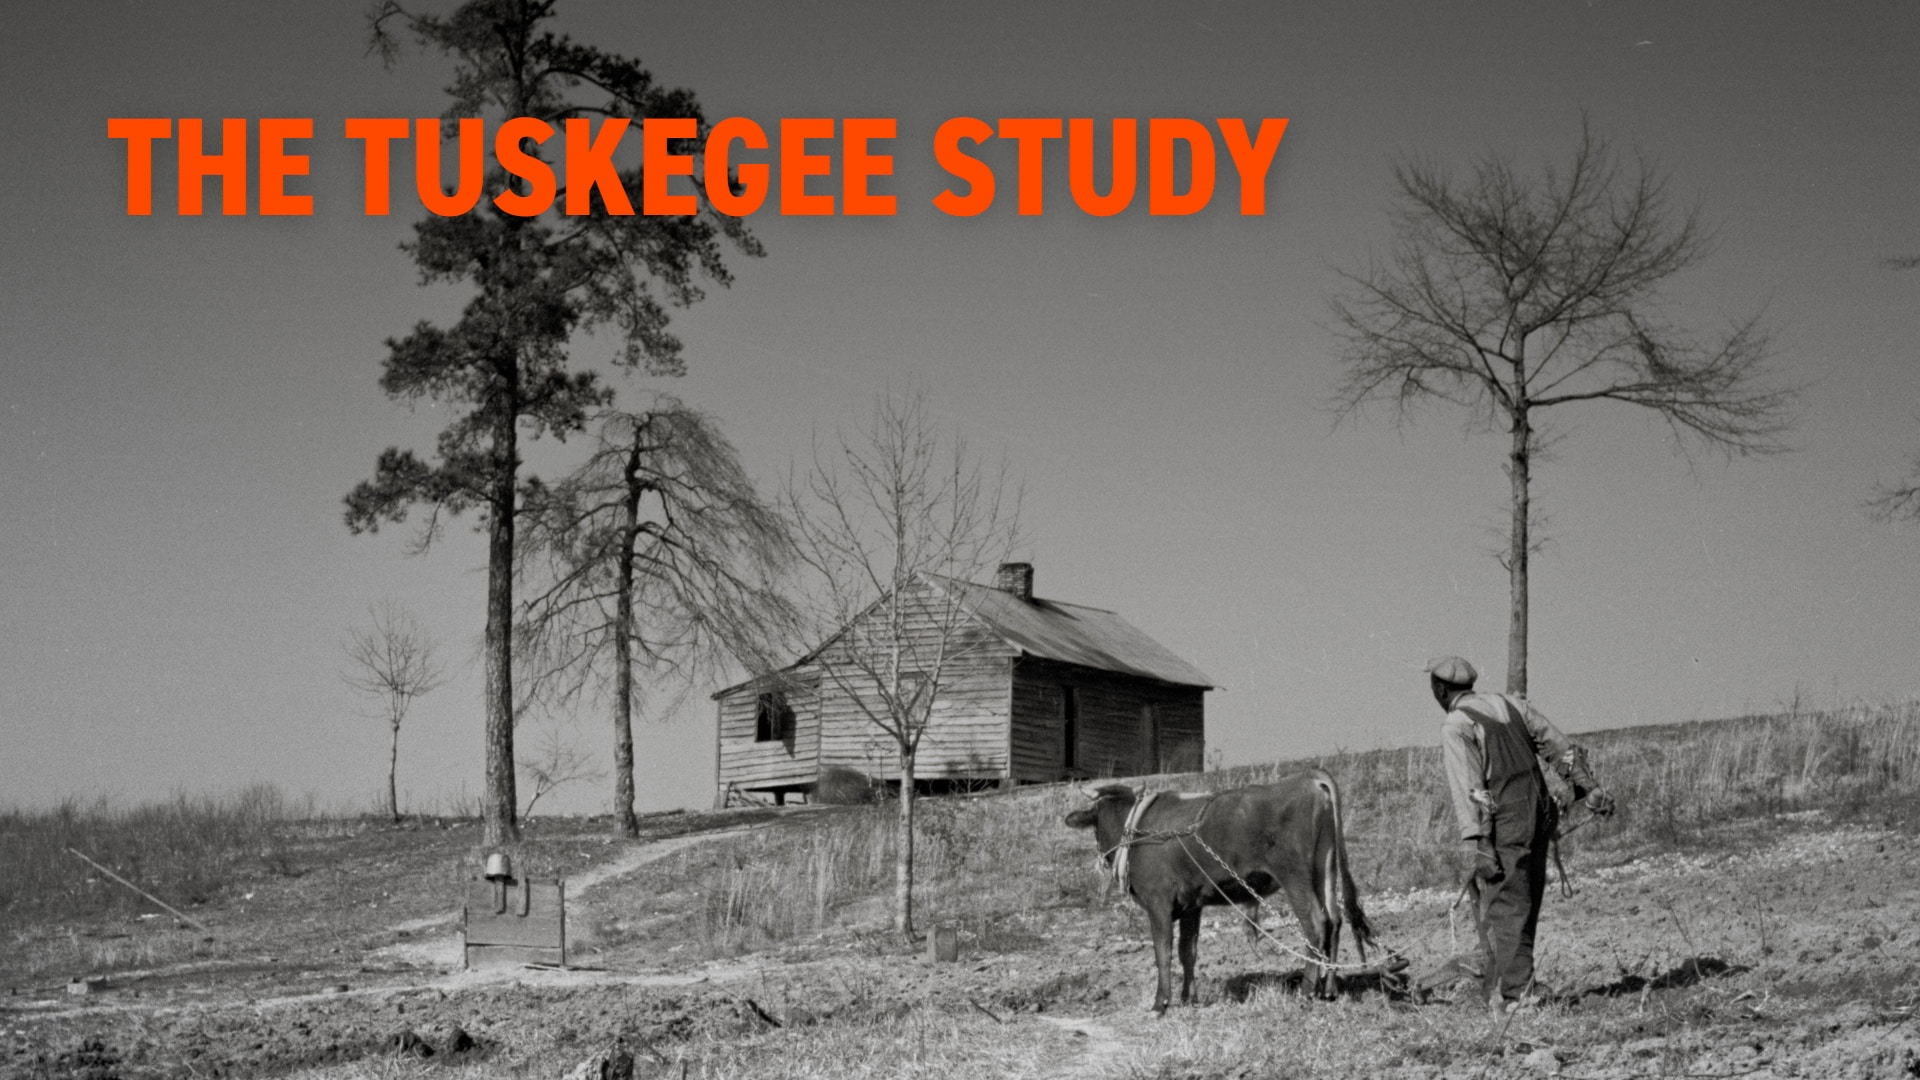 The Tuskegee Study | Black History in Two Minutes (or so)